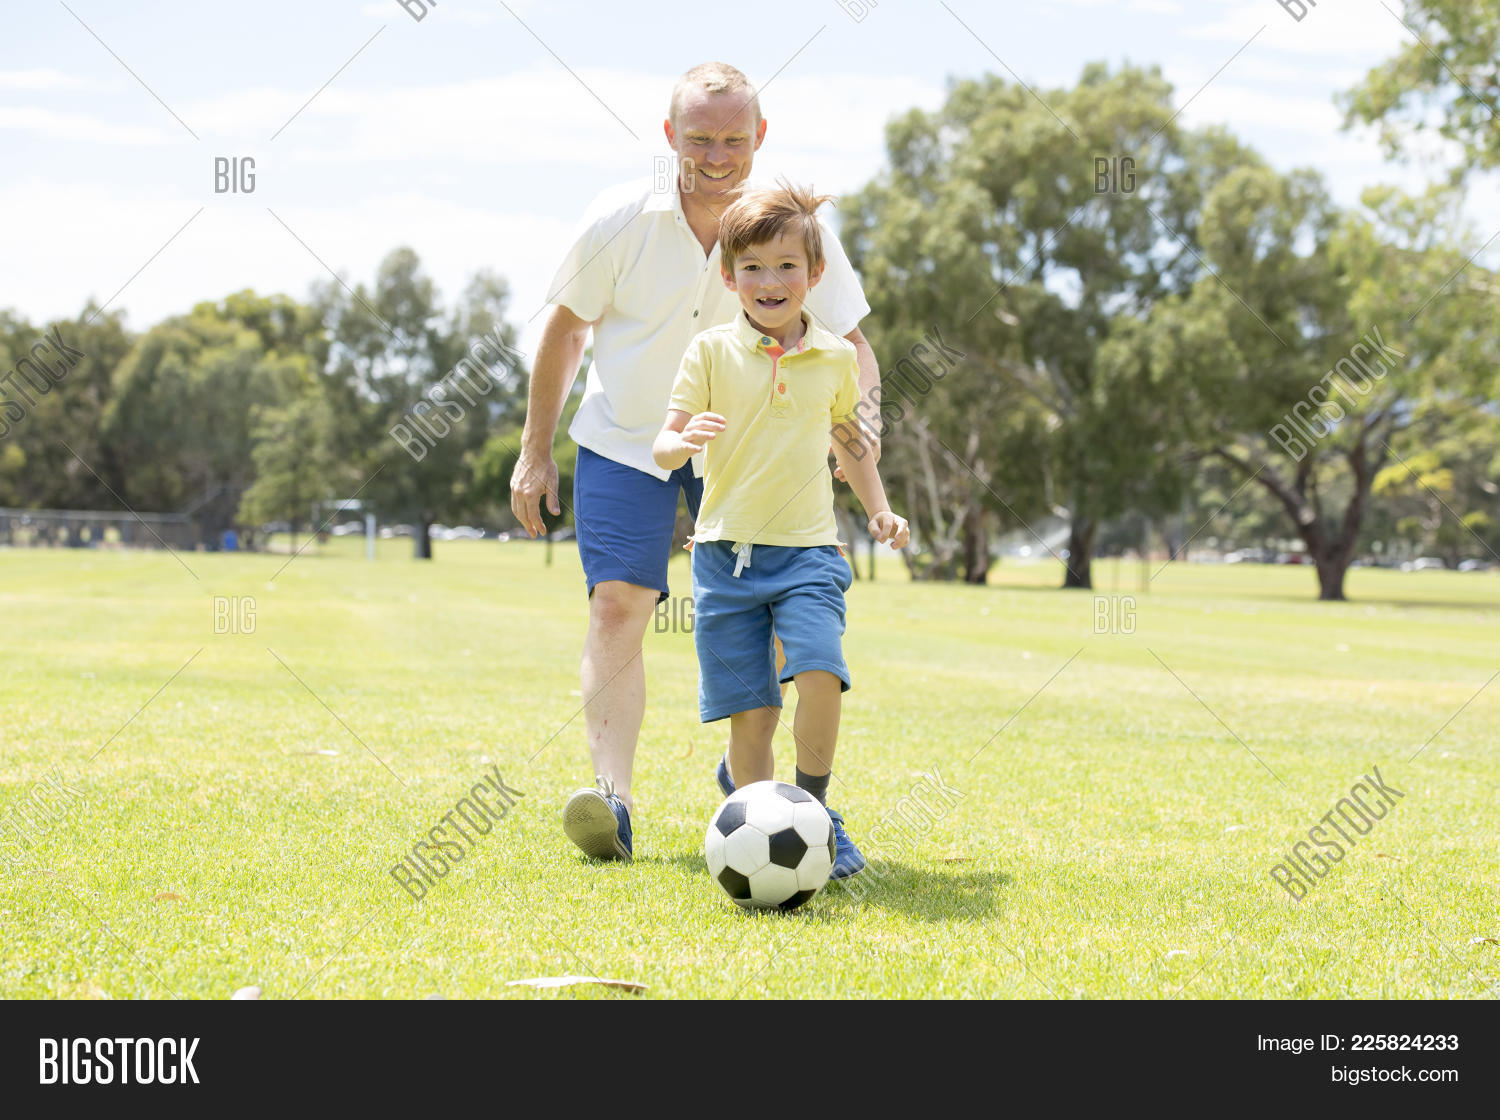 Young Happy Father Image & Photo (Free Trial) | Bigstock